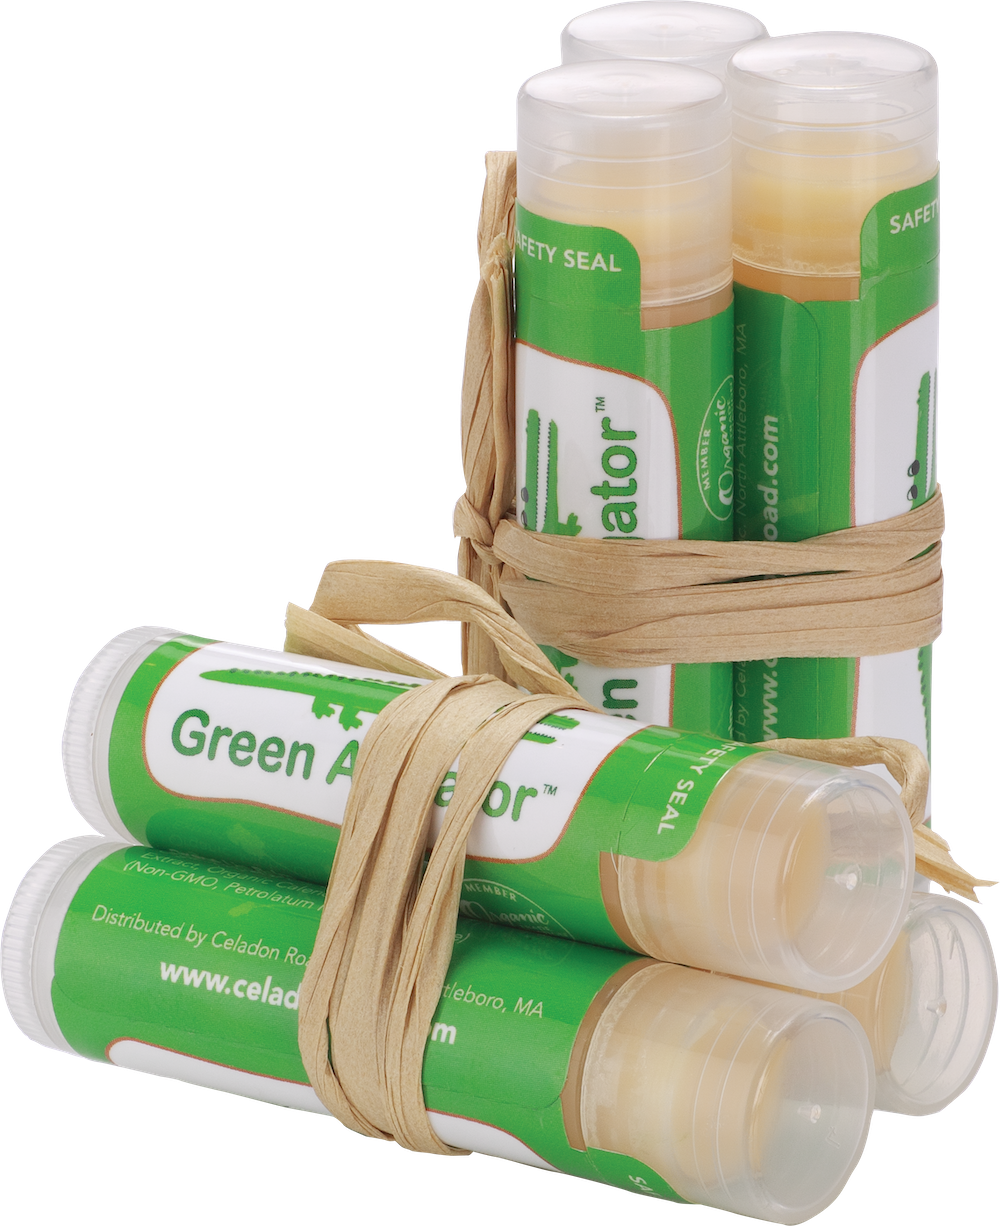 Certified Organic Green Alligator Lip Balm Trio - Vanilla, Peppermint, Coconut- Celadon Road- www.celadonroad.com